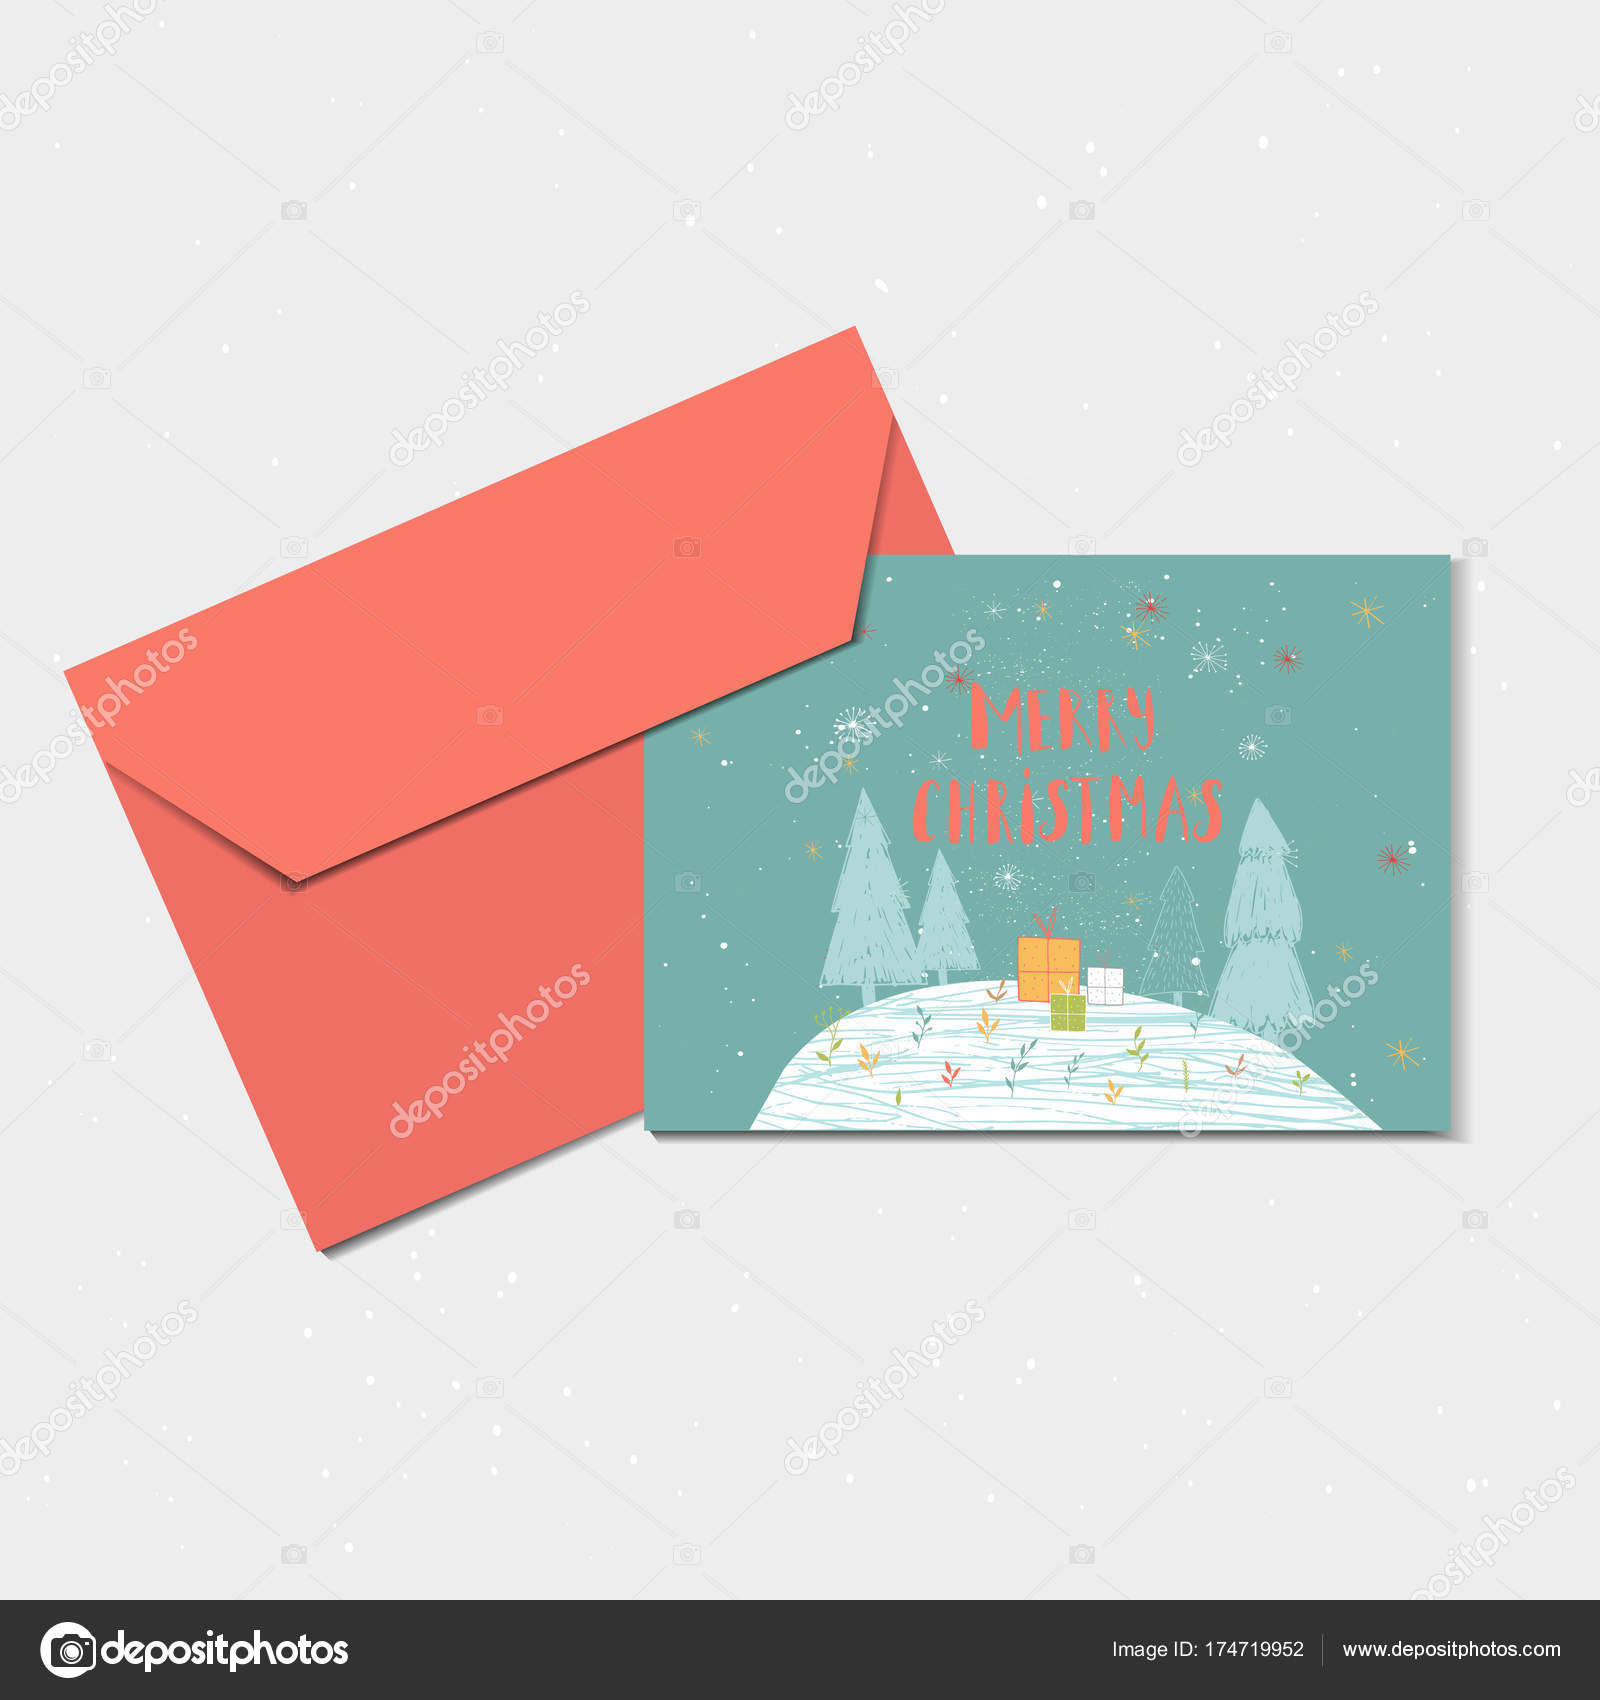 Merry Christmas Cute Greeting Card Forest Envelope Present Hand